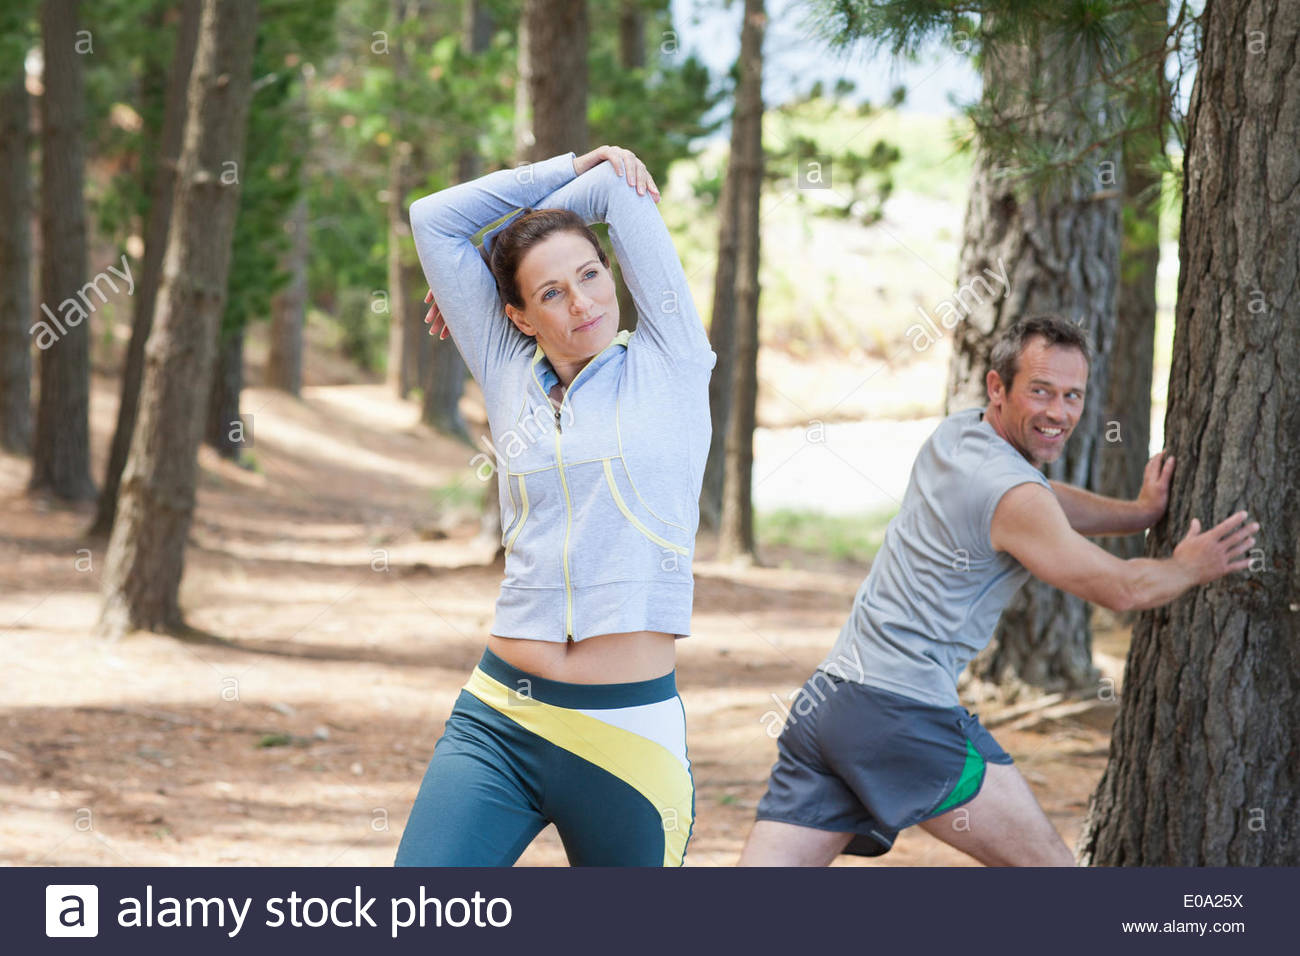 Woman stretching before run in forest Stock Photo